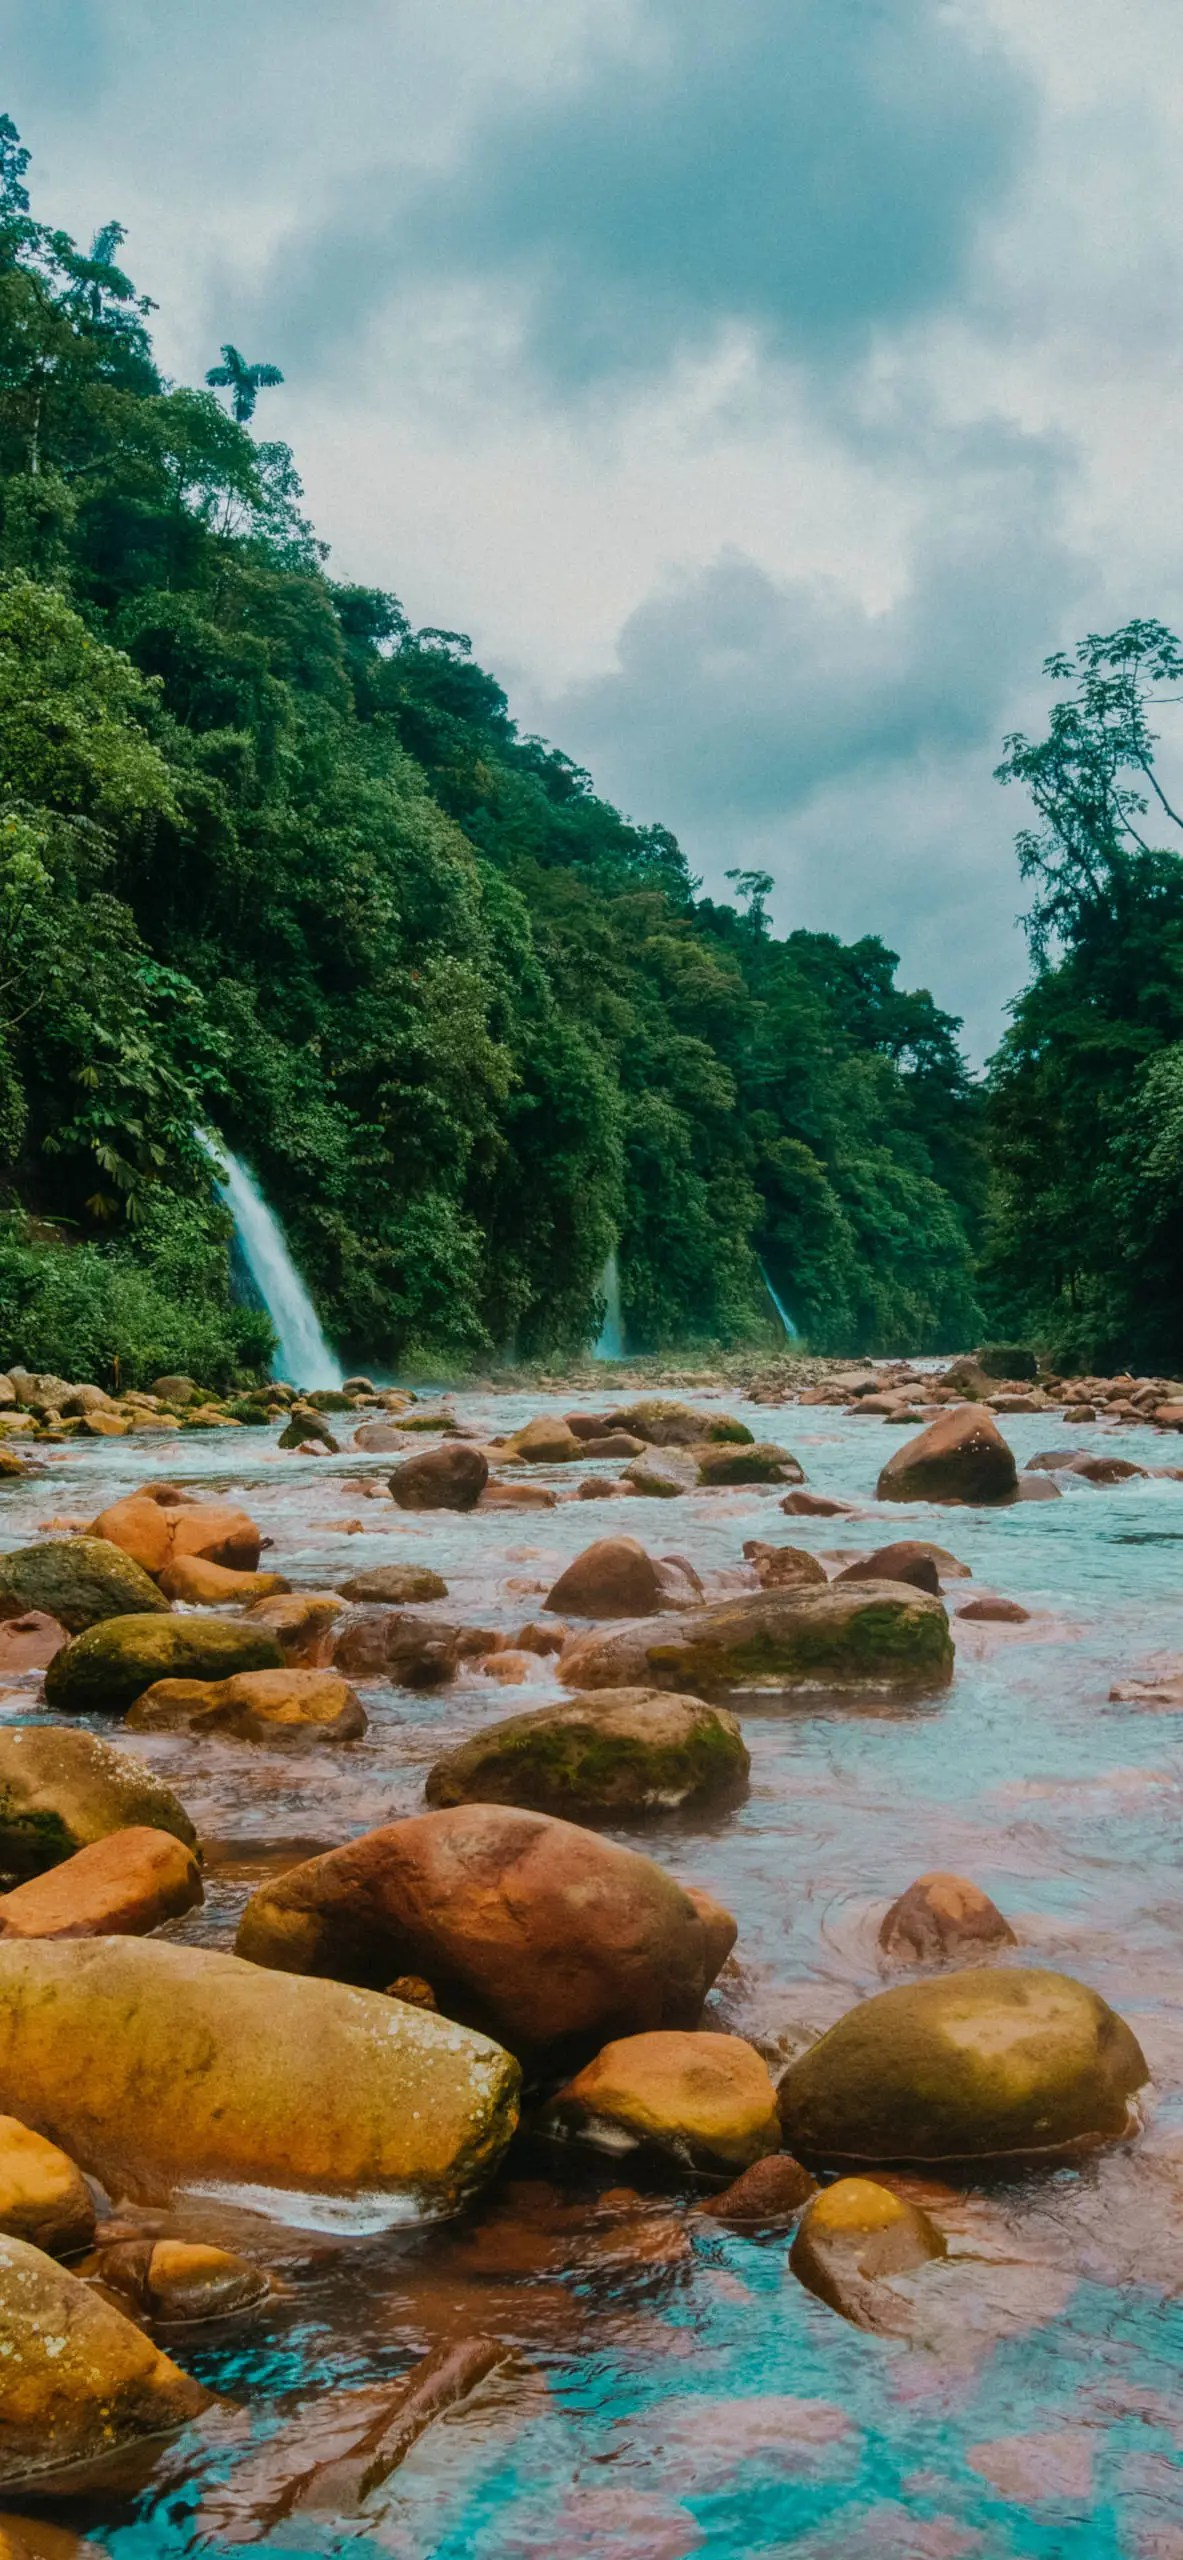 iPhone wallpapers river costa rica River